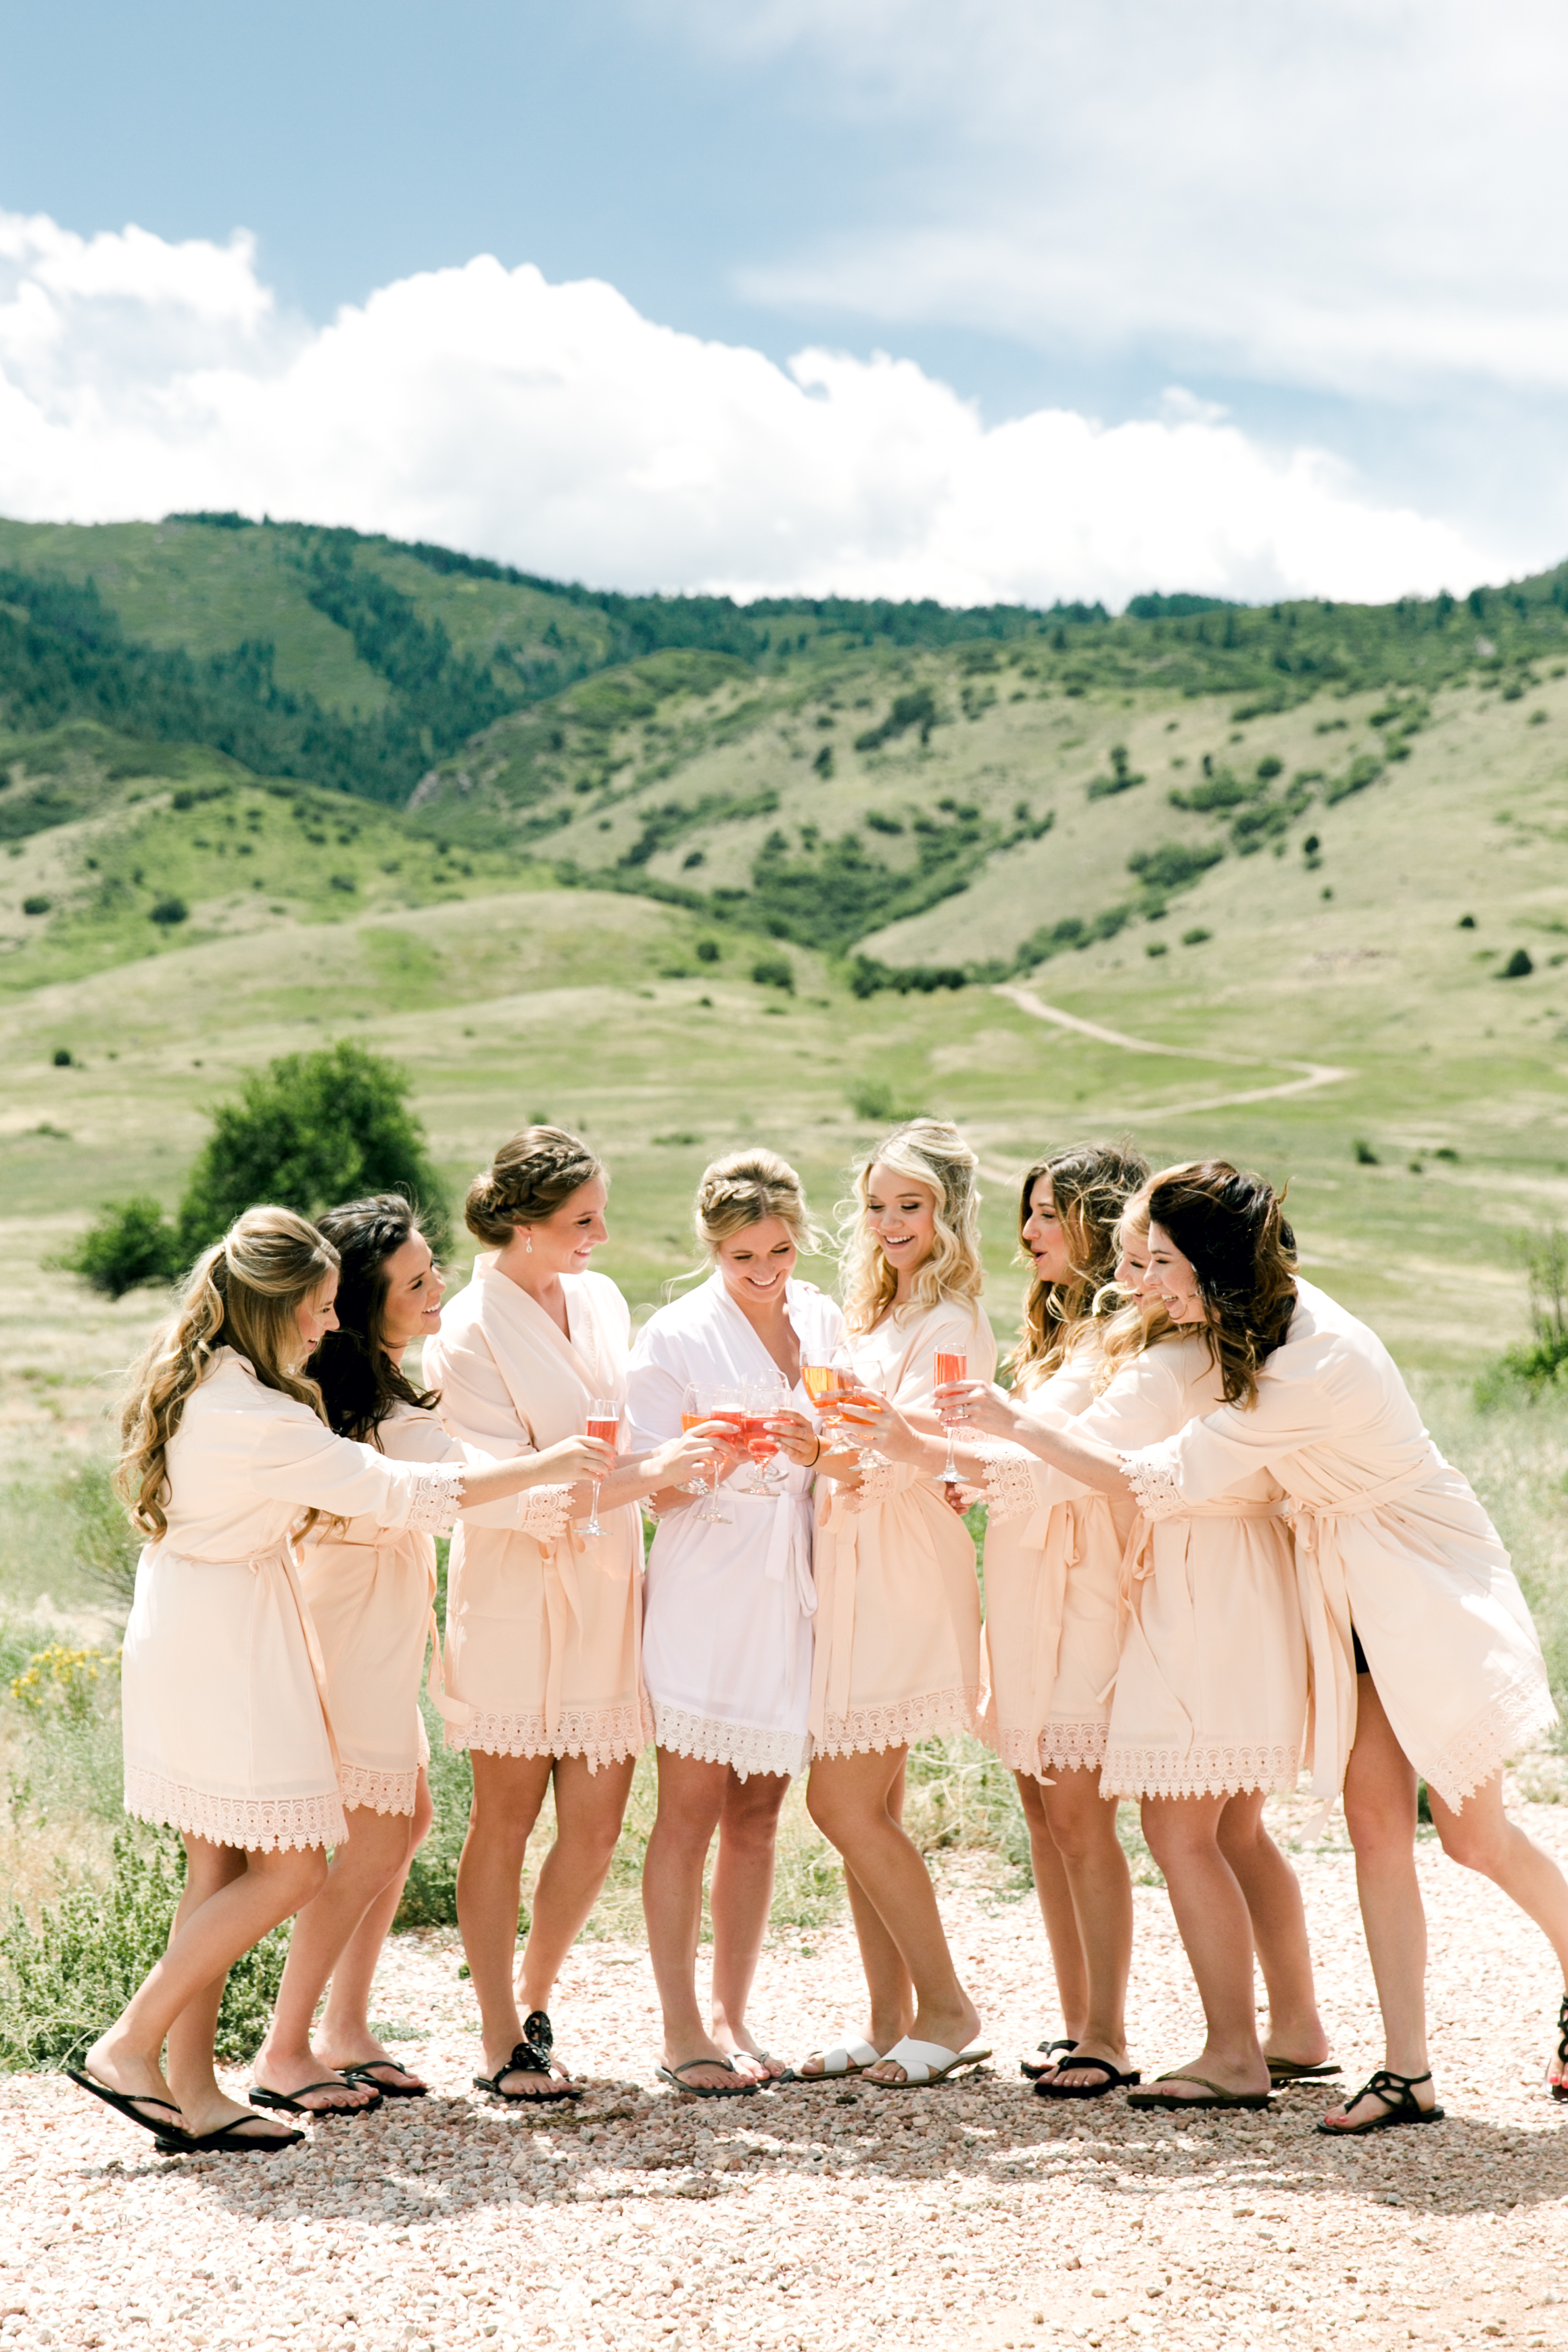 - Casee picked out the cutest robes that her bridesmaids wore while getting their hair and makeup done on the day of her wedding!